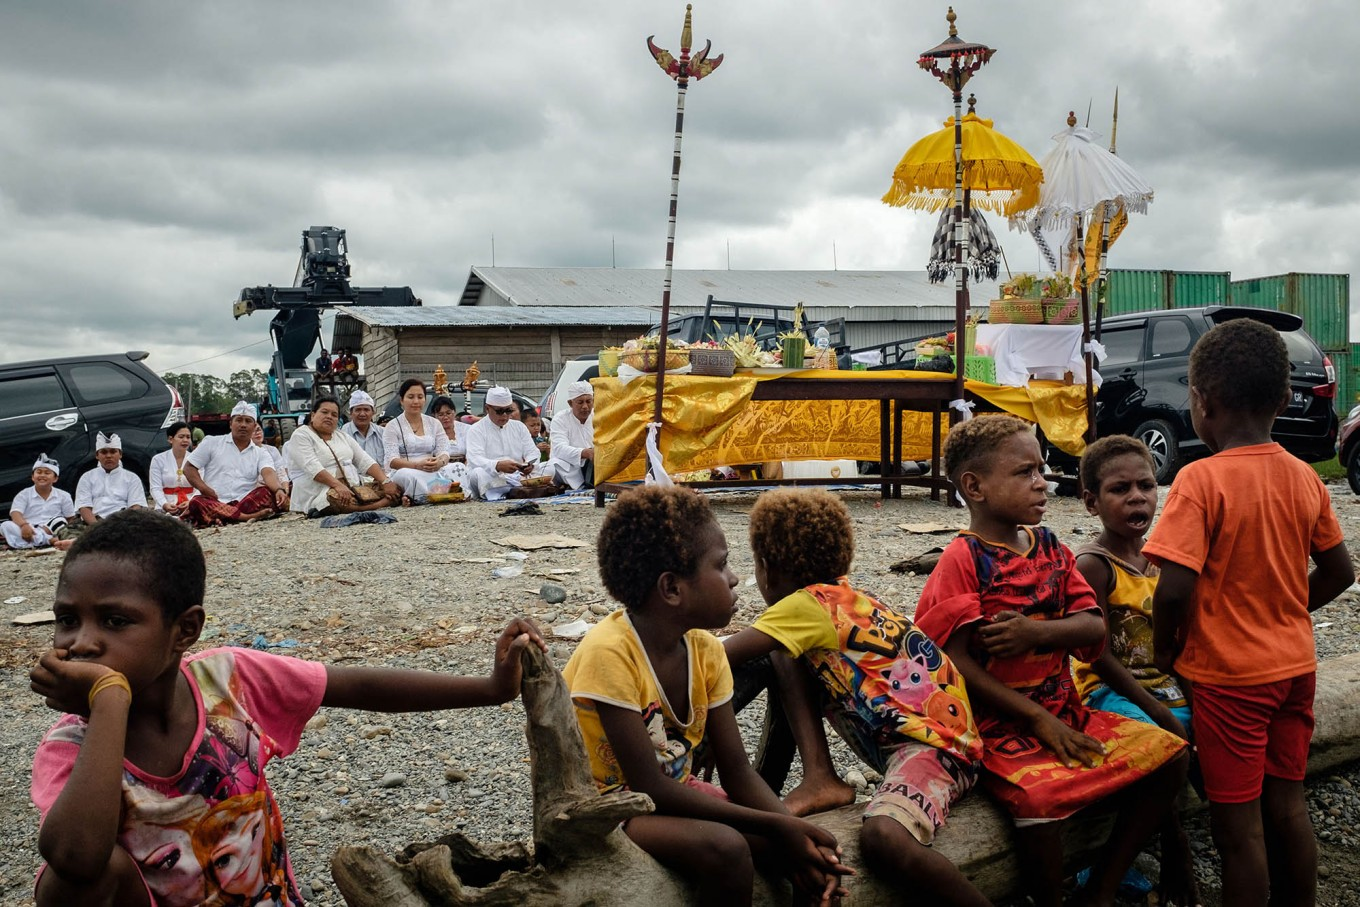 Balinese Hindus pray for the Melasti ritual while Kamoro children sit and watch quietly at the Mimika coast. JP/Vembri Waluyas